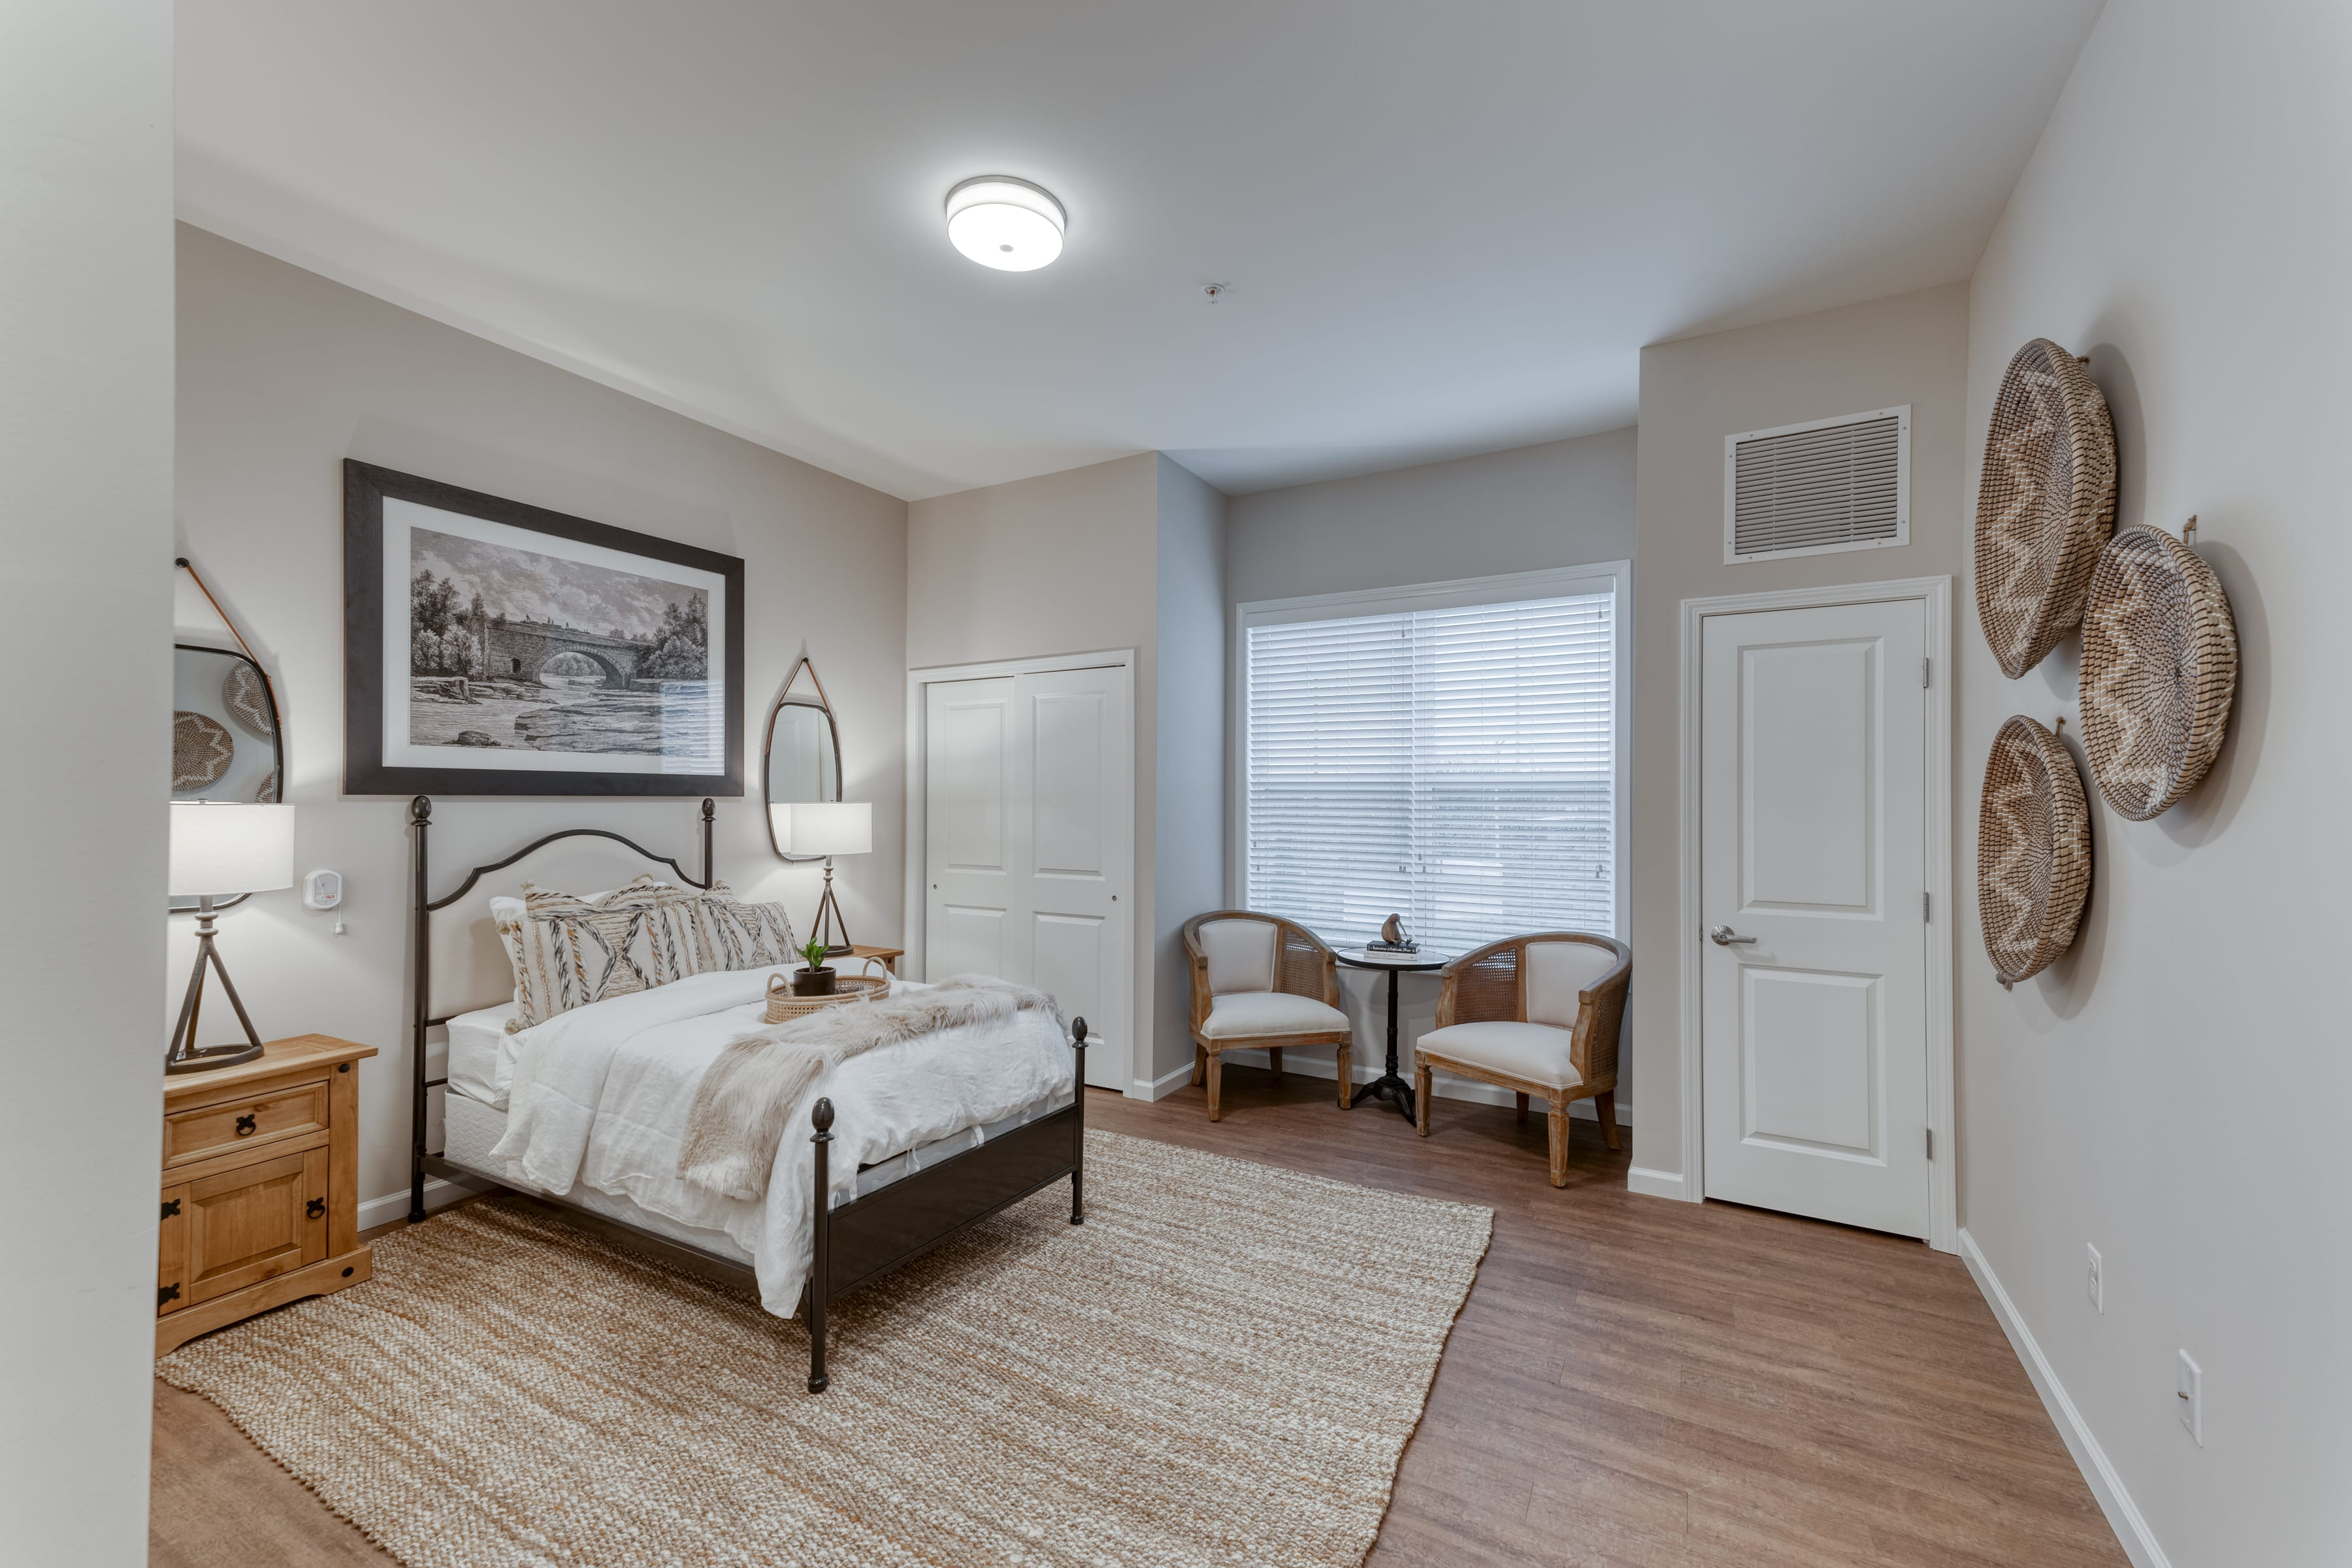 Resident bedrooms are furnished to be both functional and comfortable